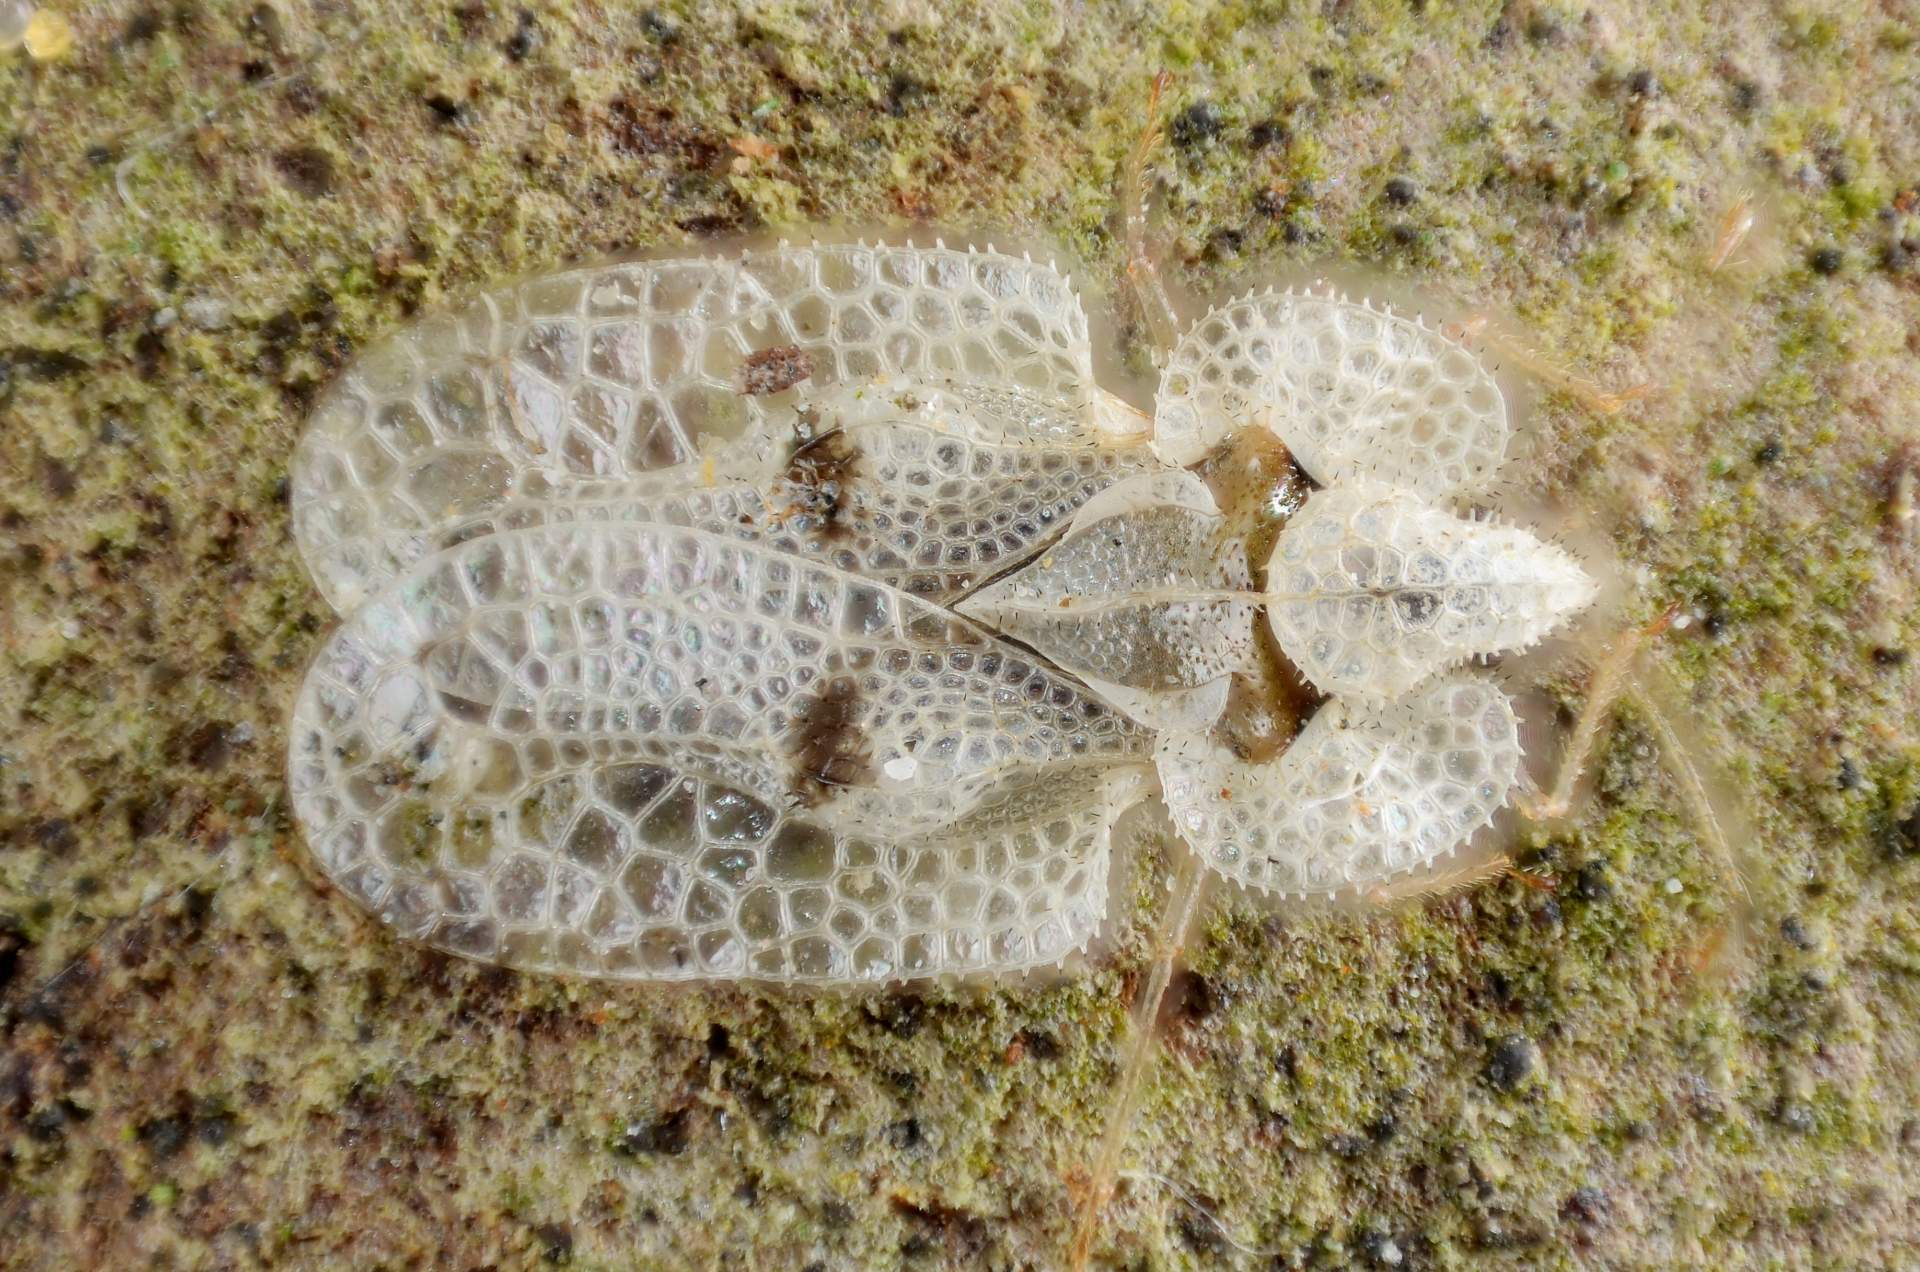 adult Sycamore Lace Bug